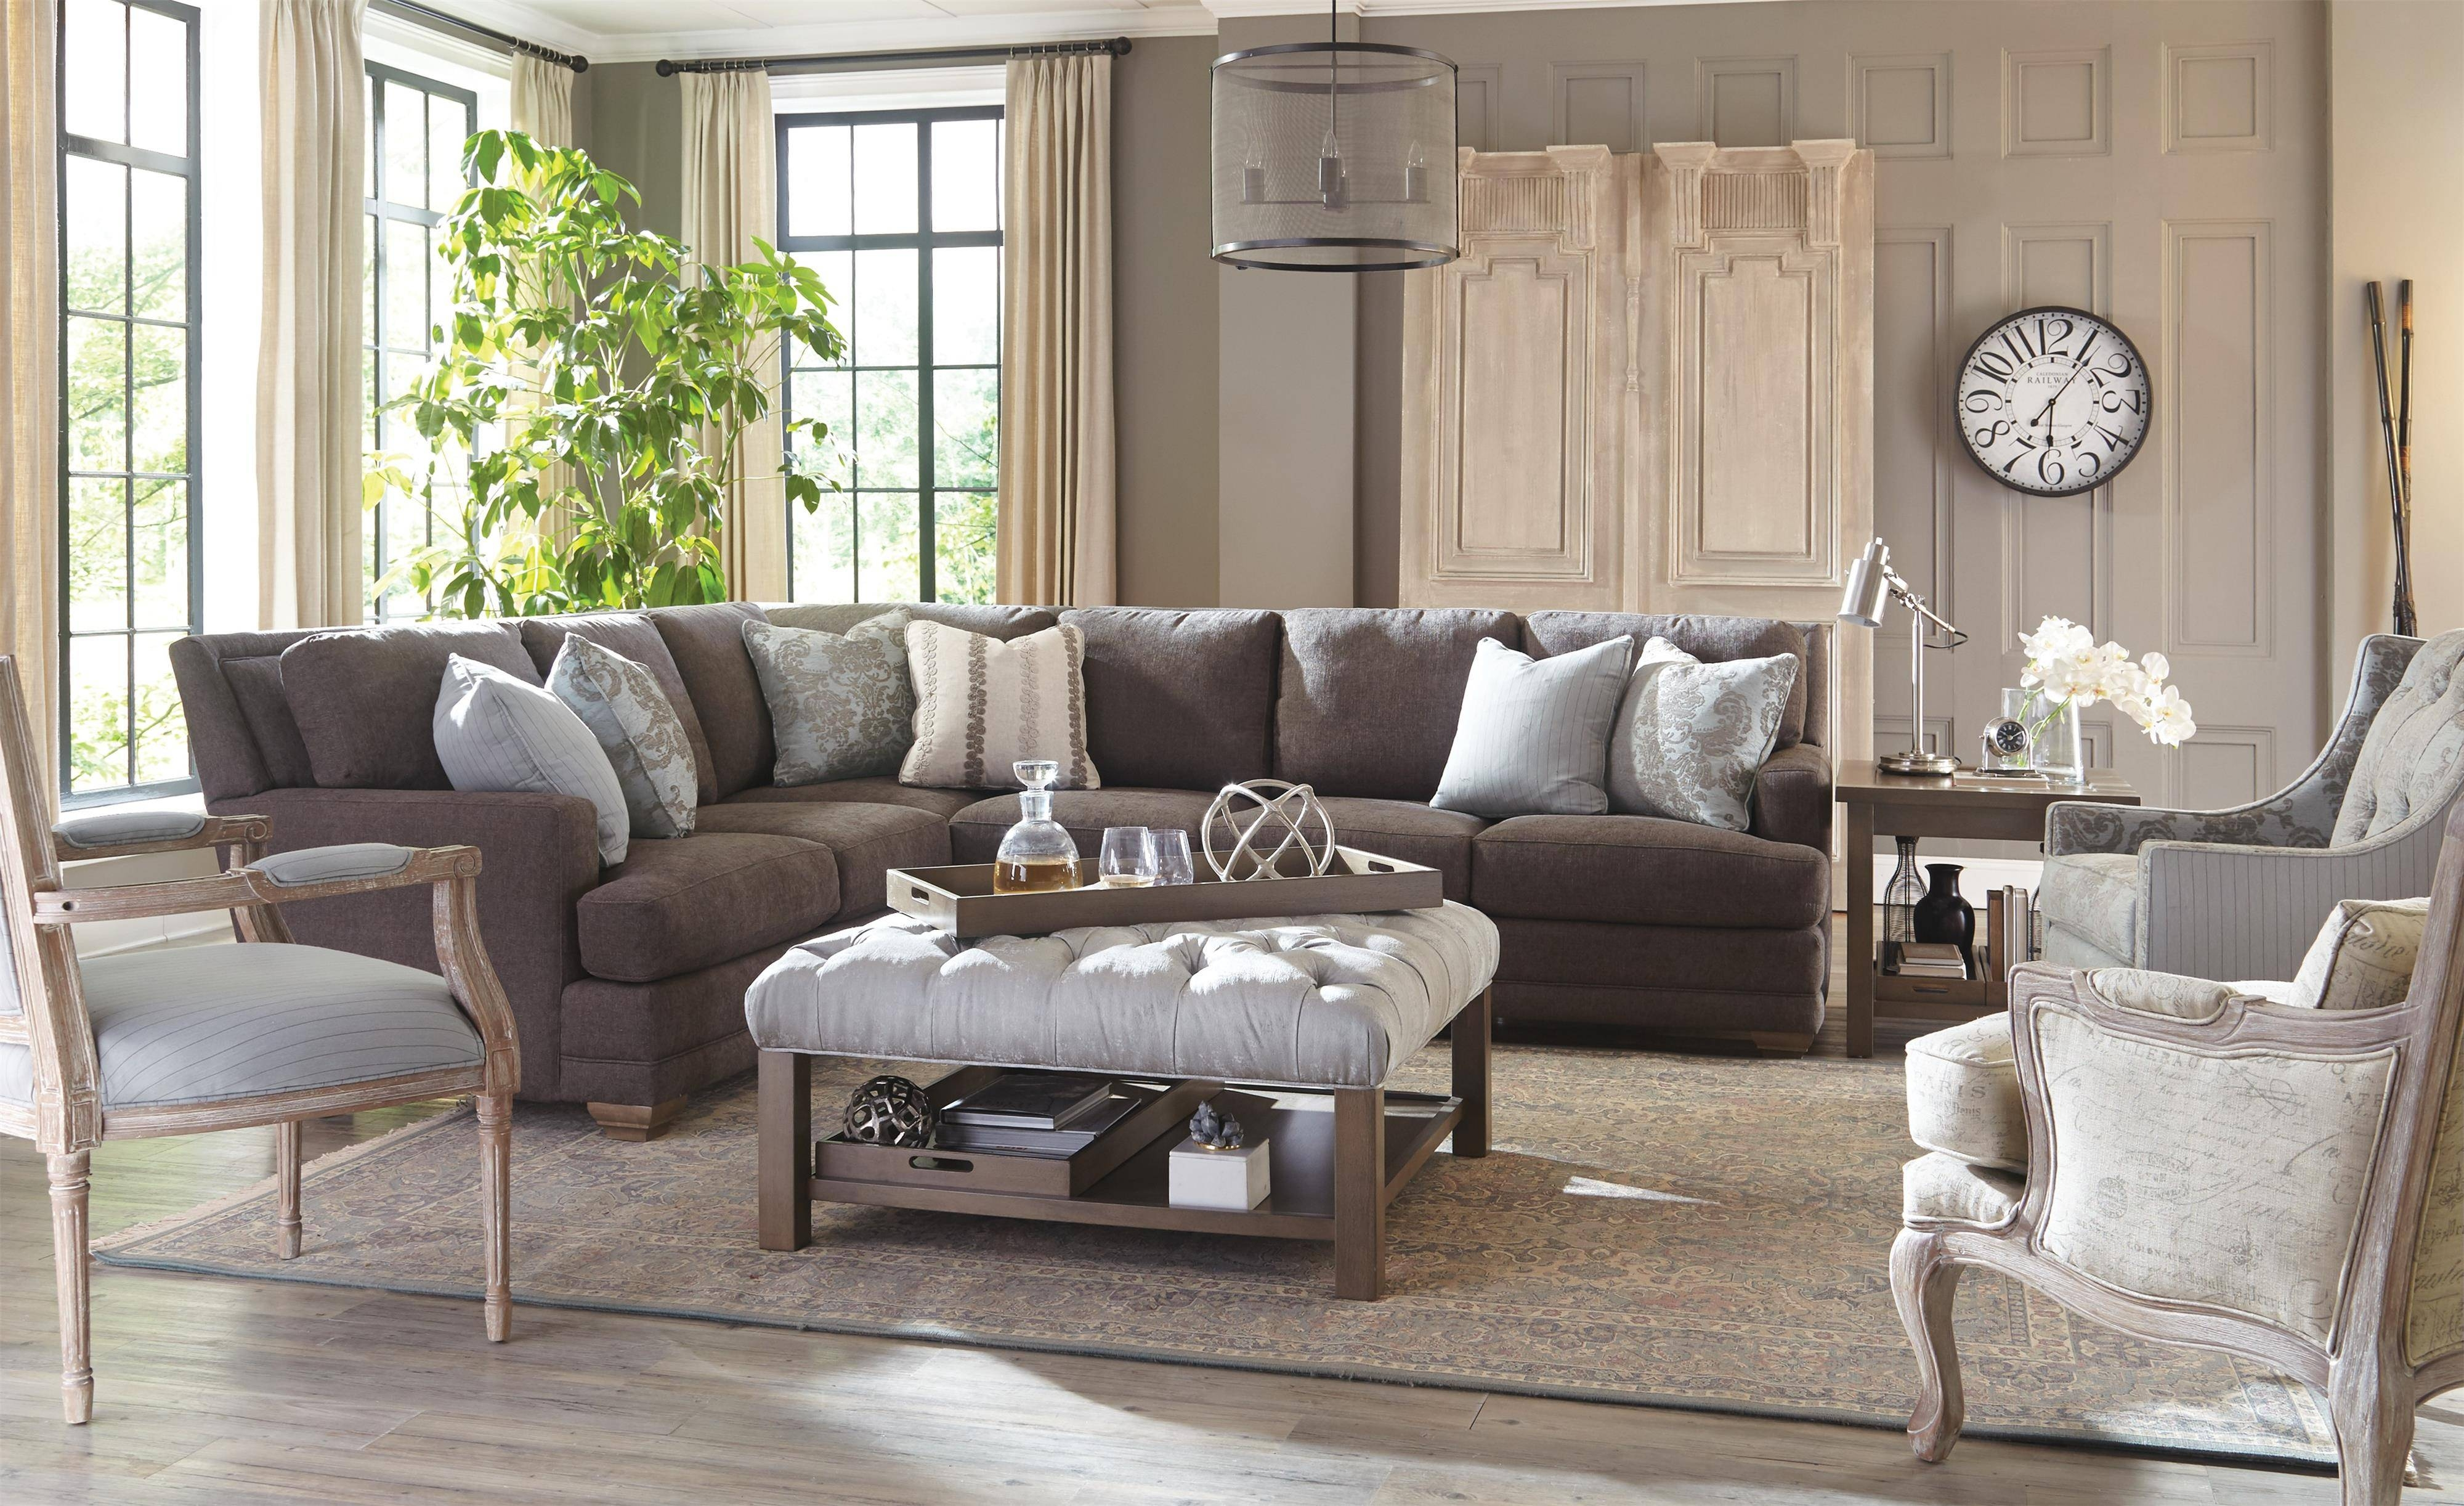 Traditional Sectional Sofa With Toss Pillowscraftmaster | Wolf throughout Traditional Sectional Sofas (Image 19 of 25)